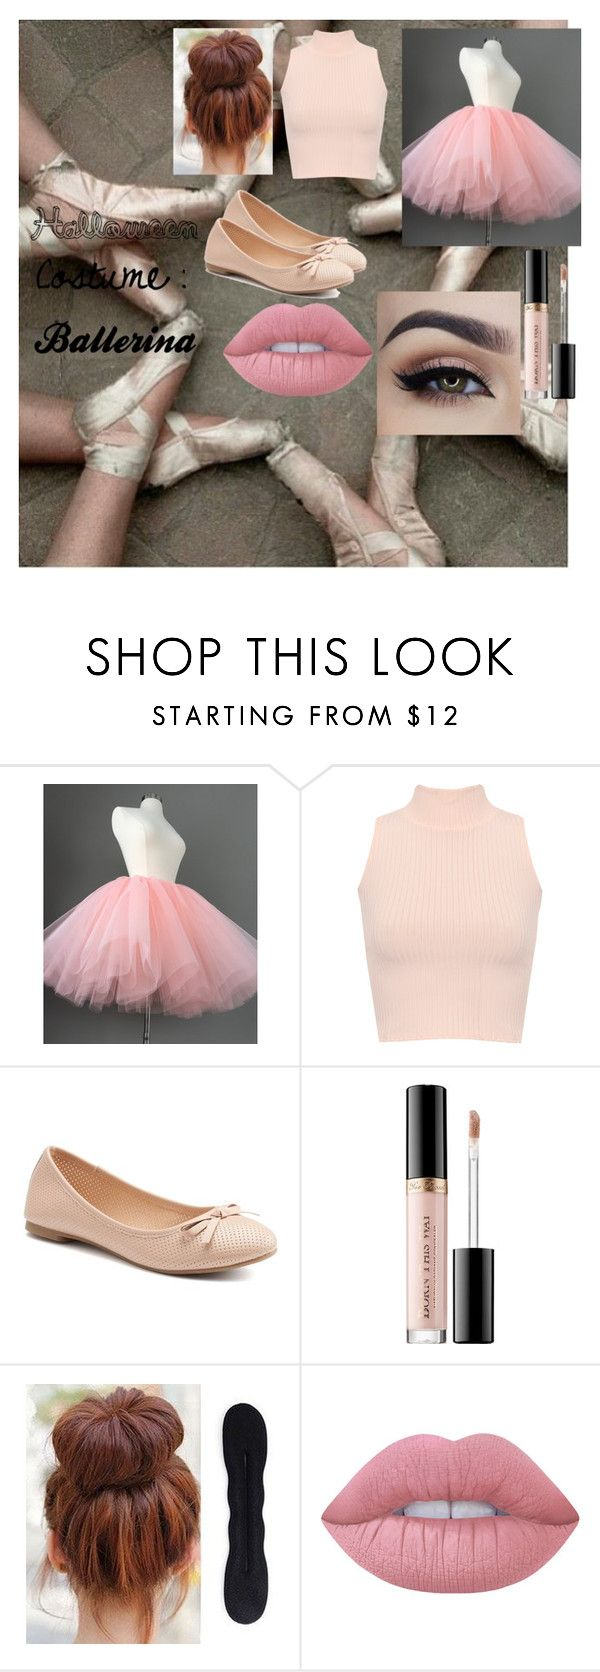 """Halloween Costume : Ballerina"" by sineadmurphy152 on Polyvore featuring WearAll, SO, Sephora Collection and Lime Crime"